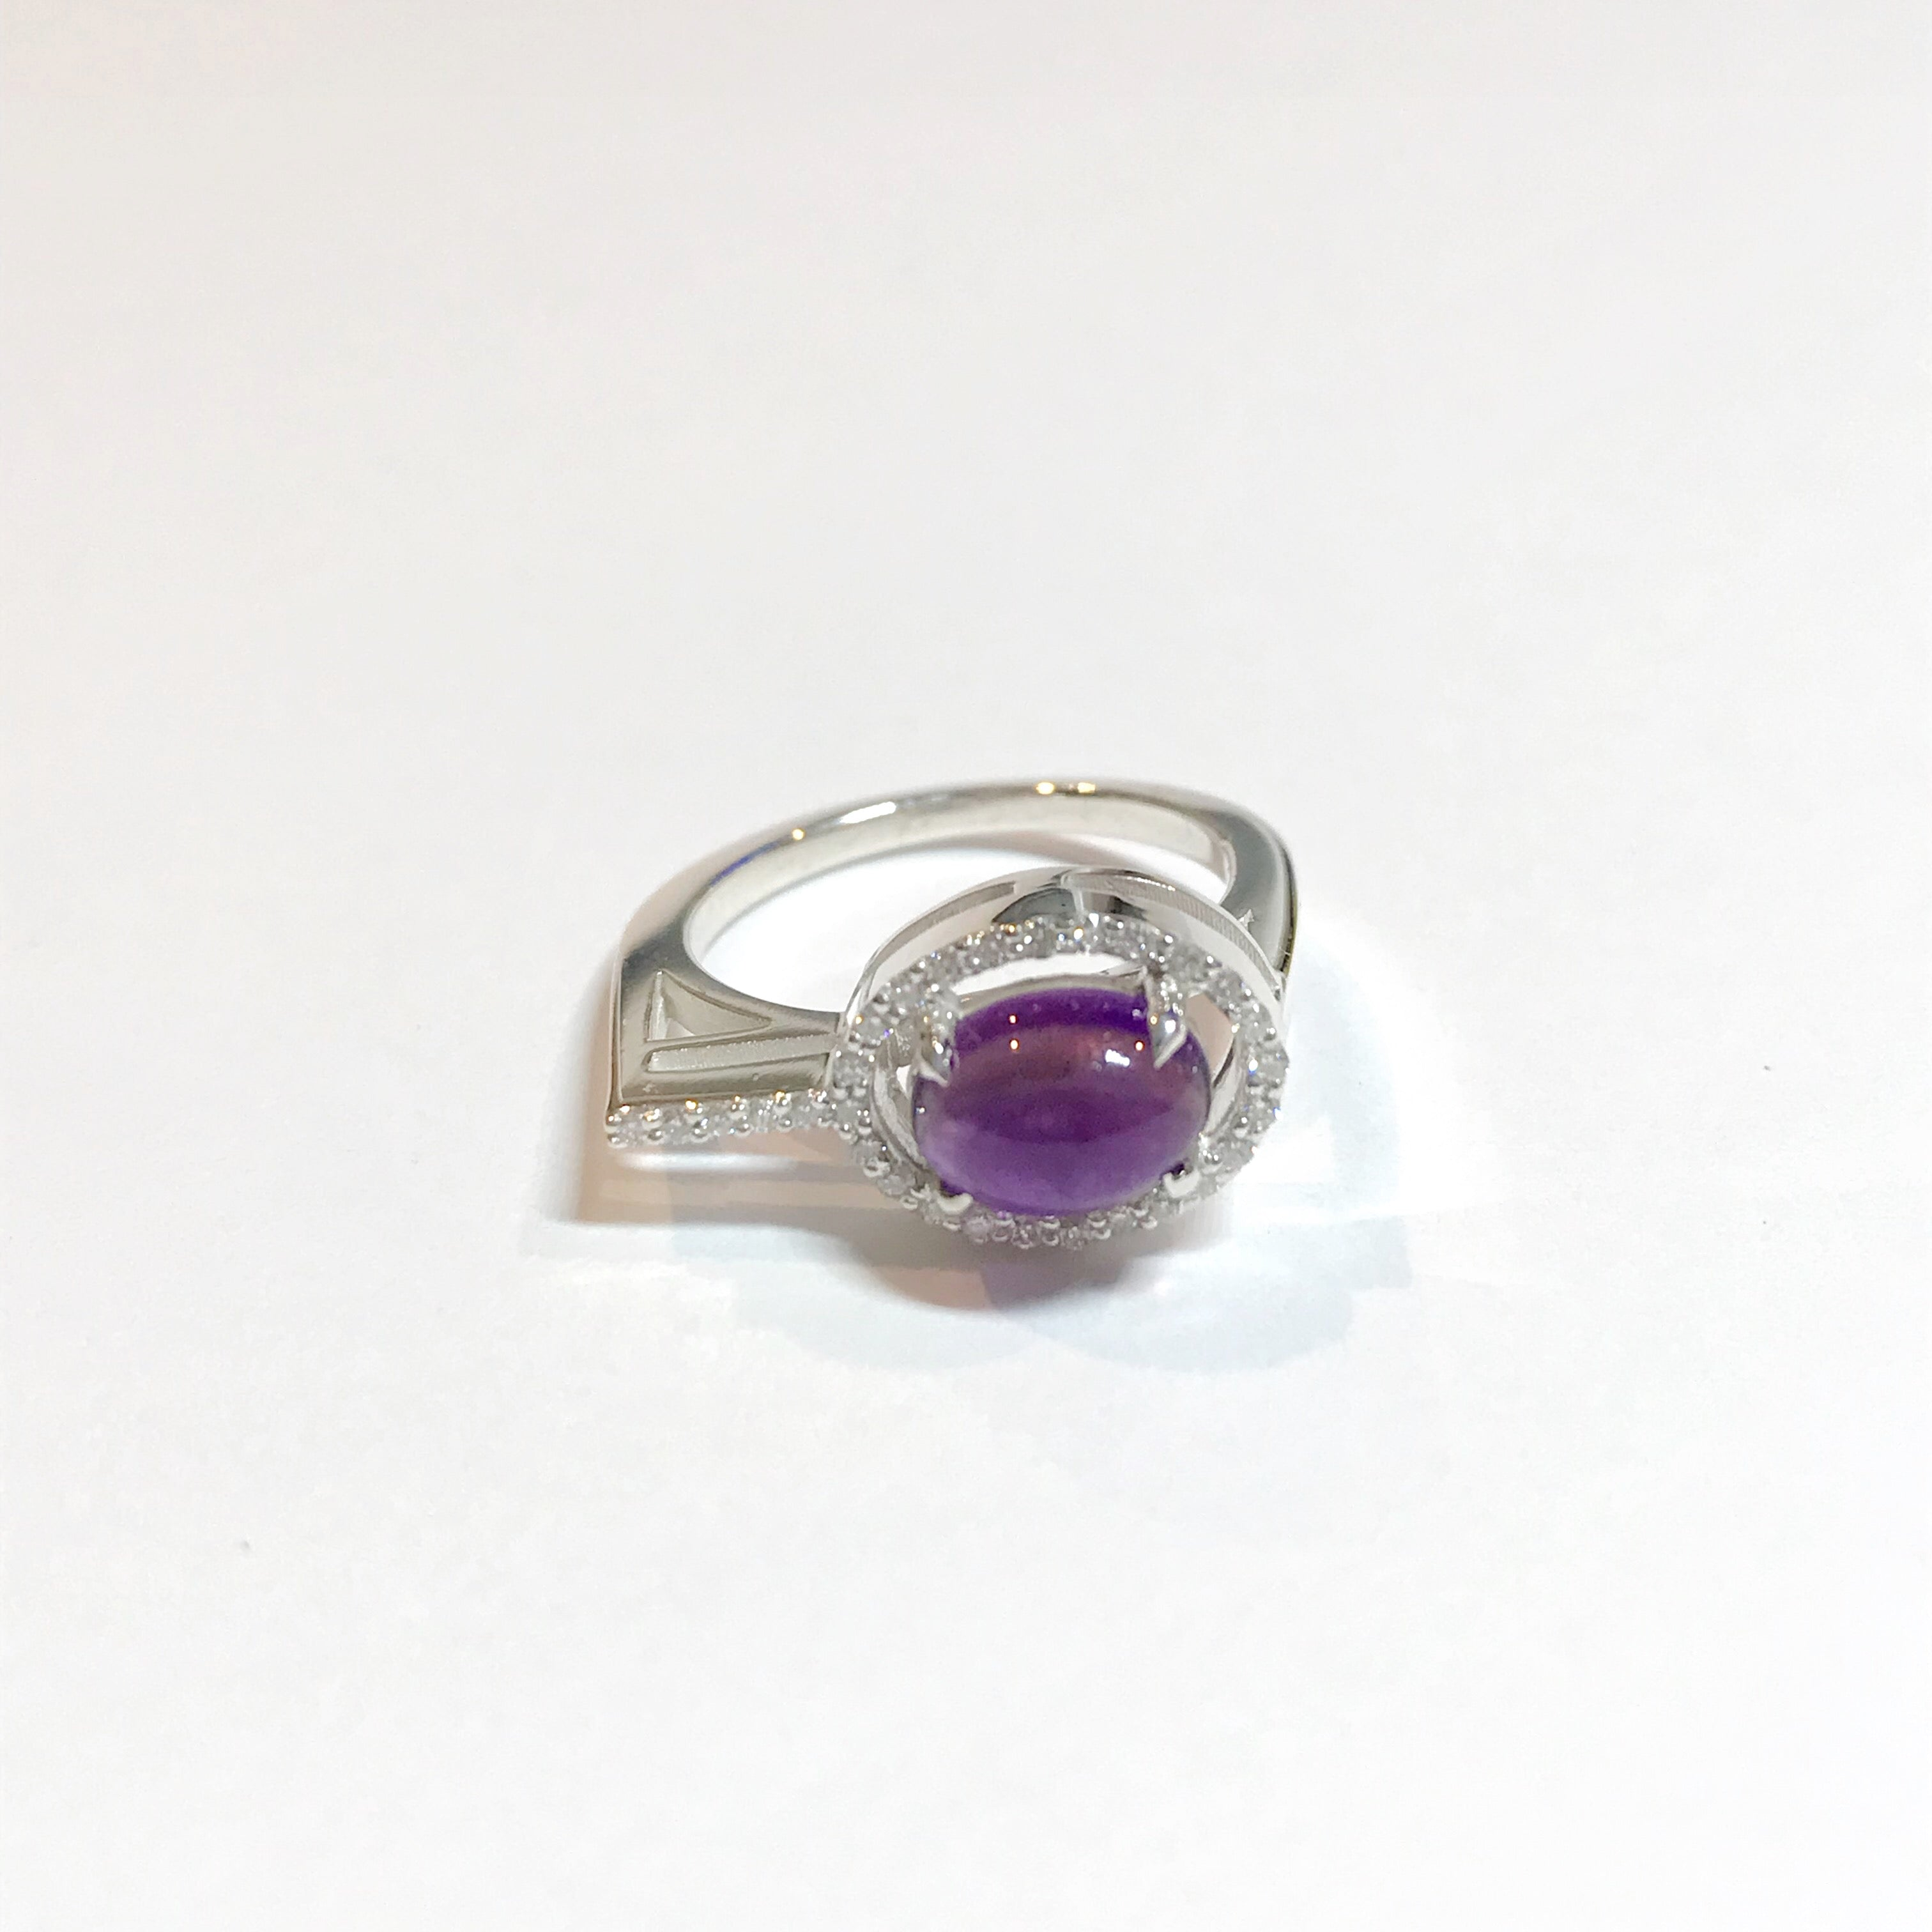 Irini gem drop white diamond and cabachon ring set, made in nyc, citrine and amethyst stones